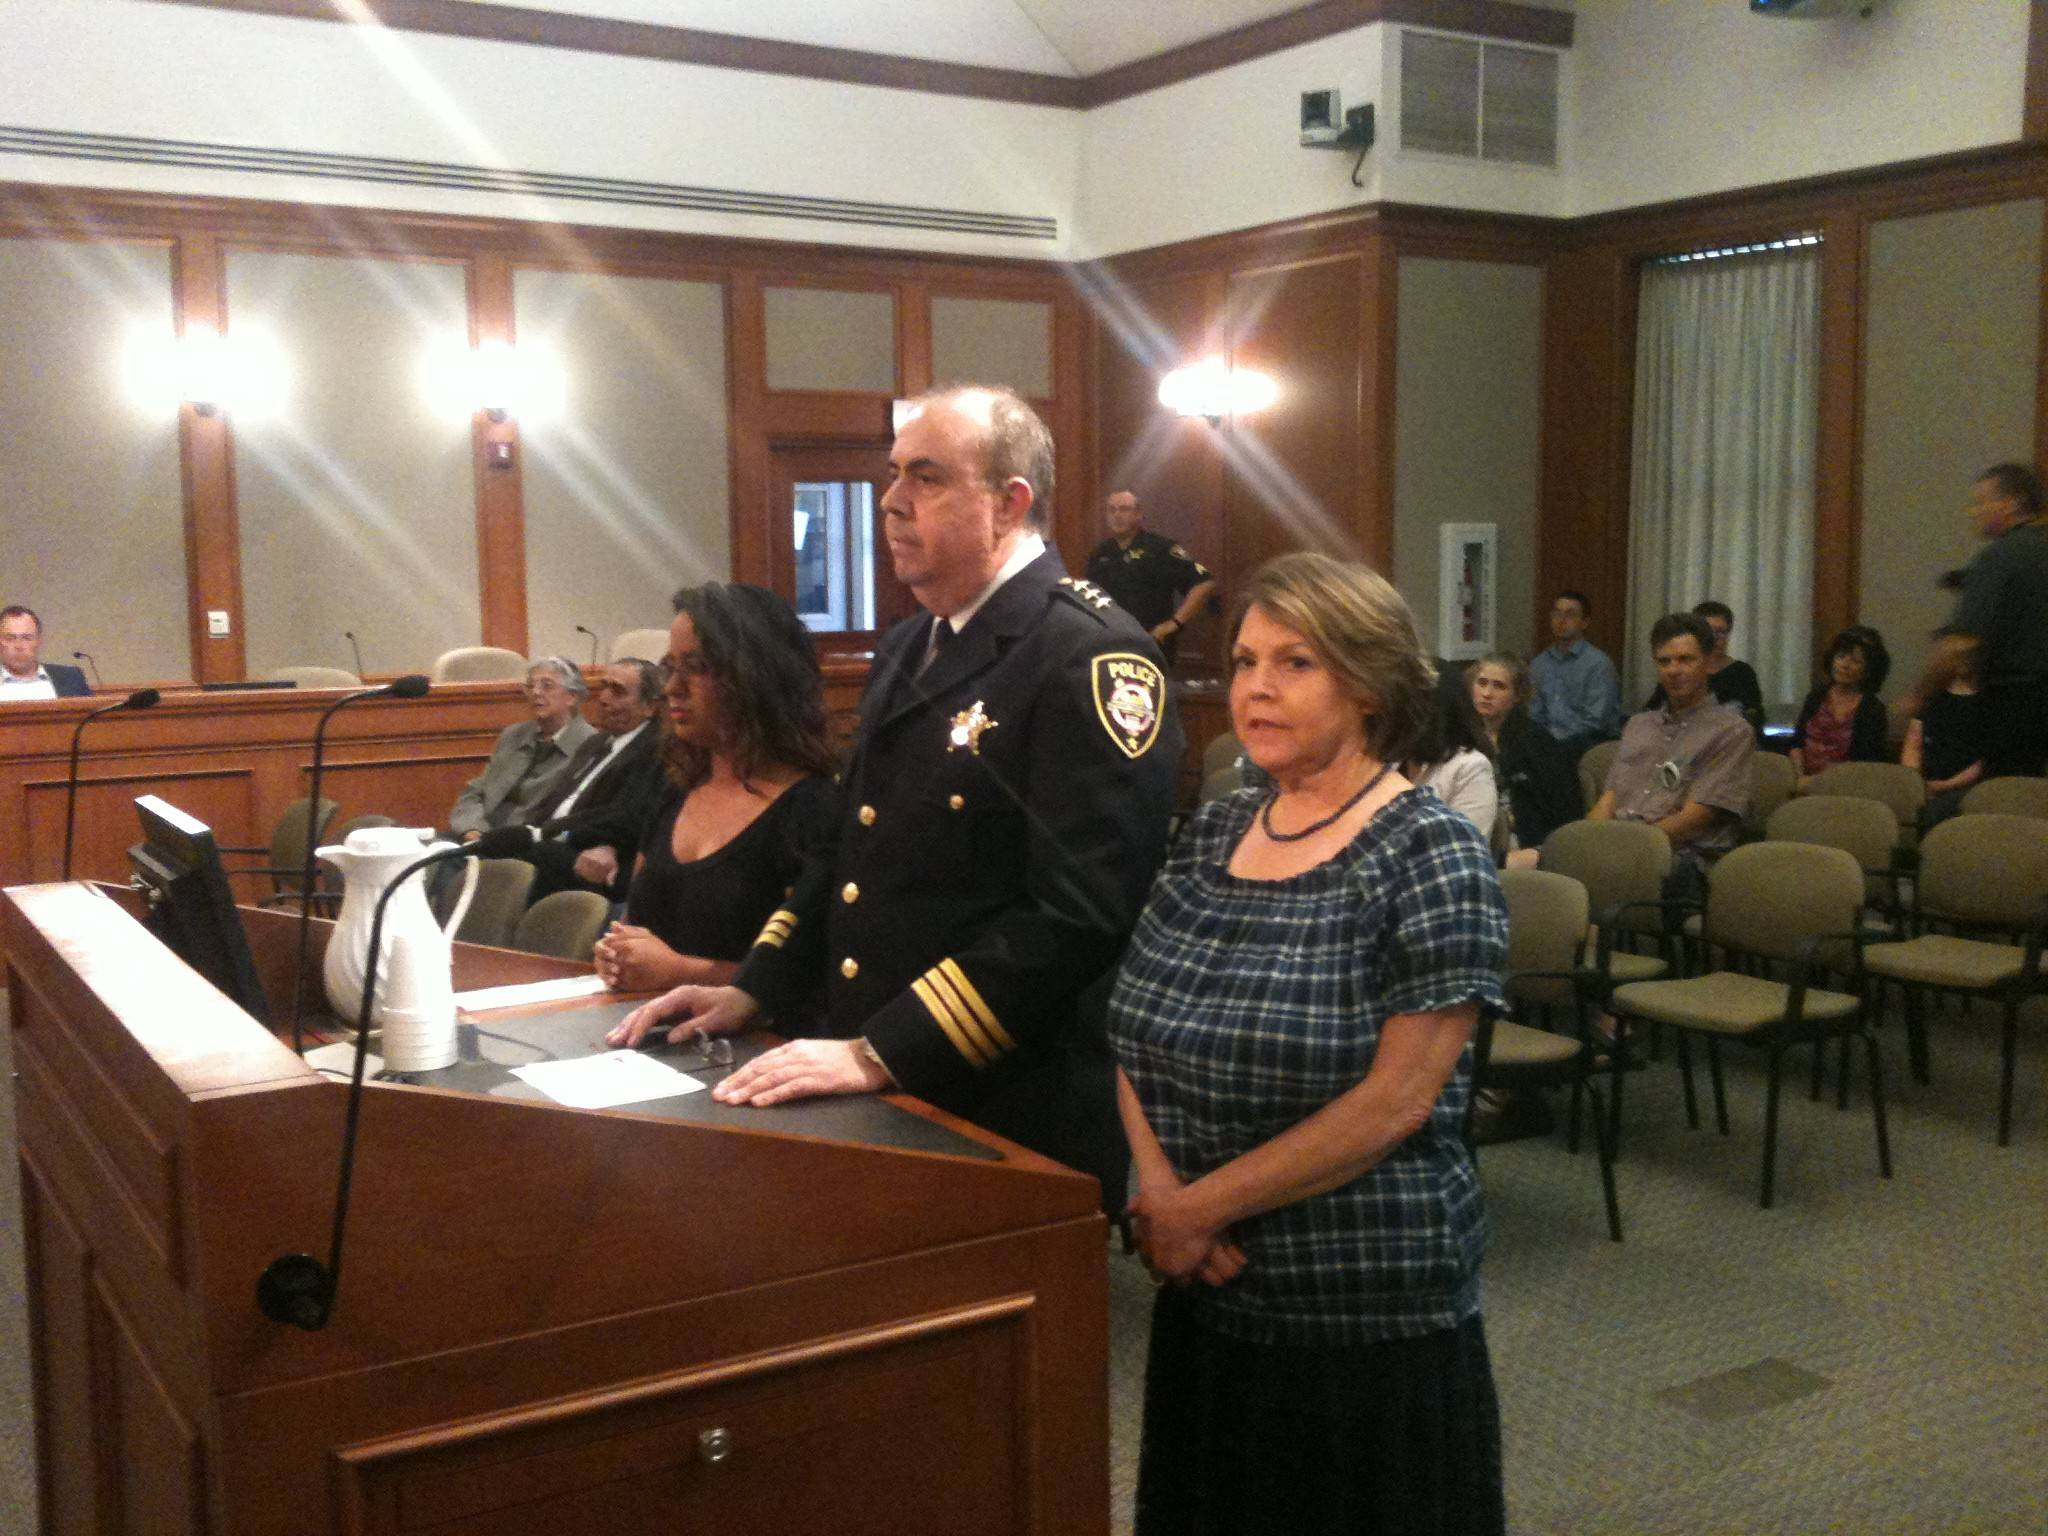 Retiring Mount Prospect Police Chief Michael Semkiu is honored at the Mount Prospect village board meeting on June 3, flanked by his wife, Rosann, and his daughter, Rebecca.